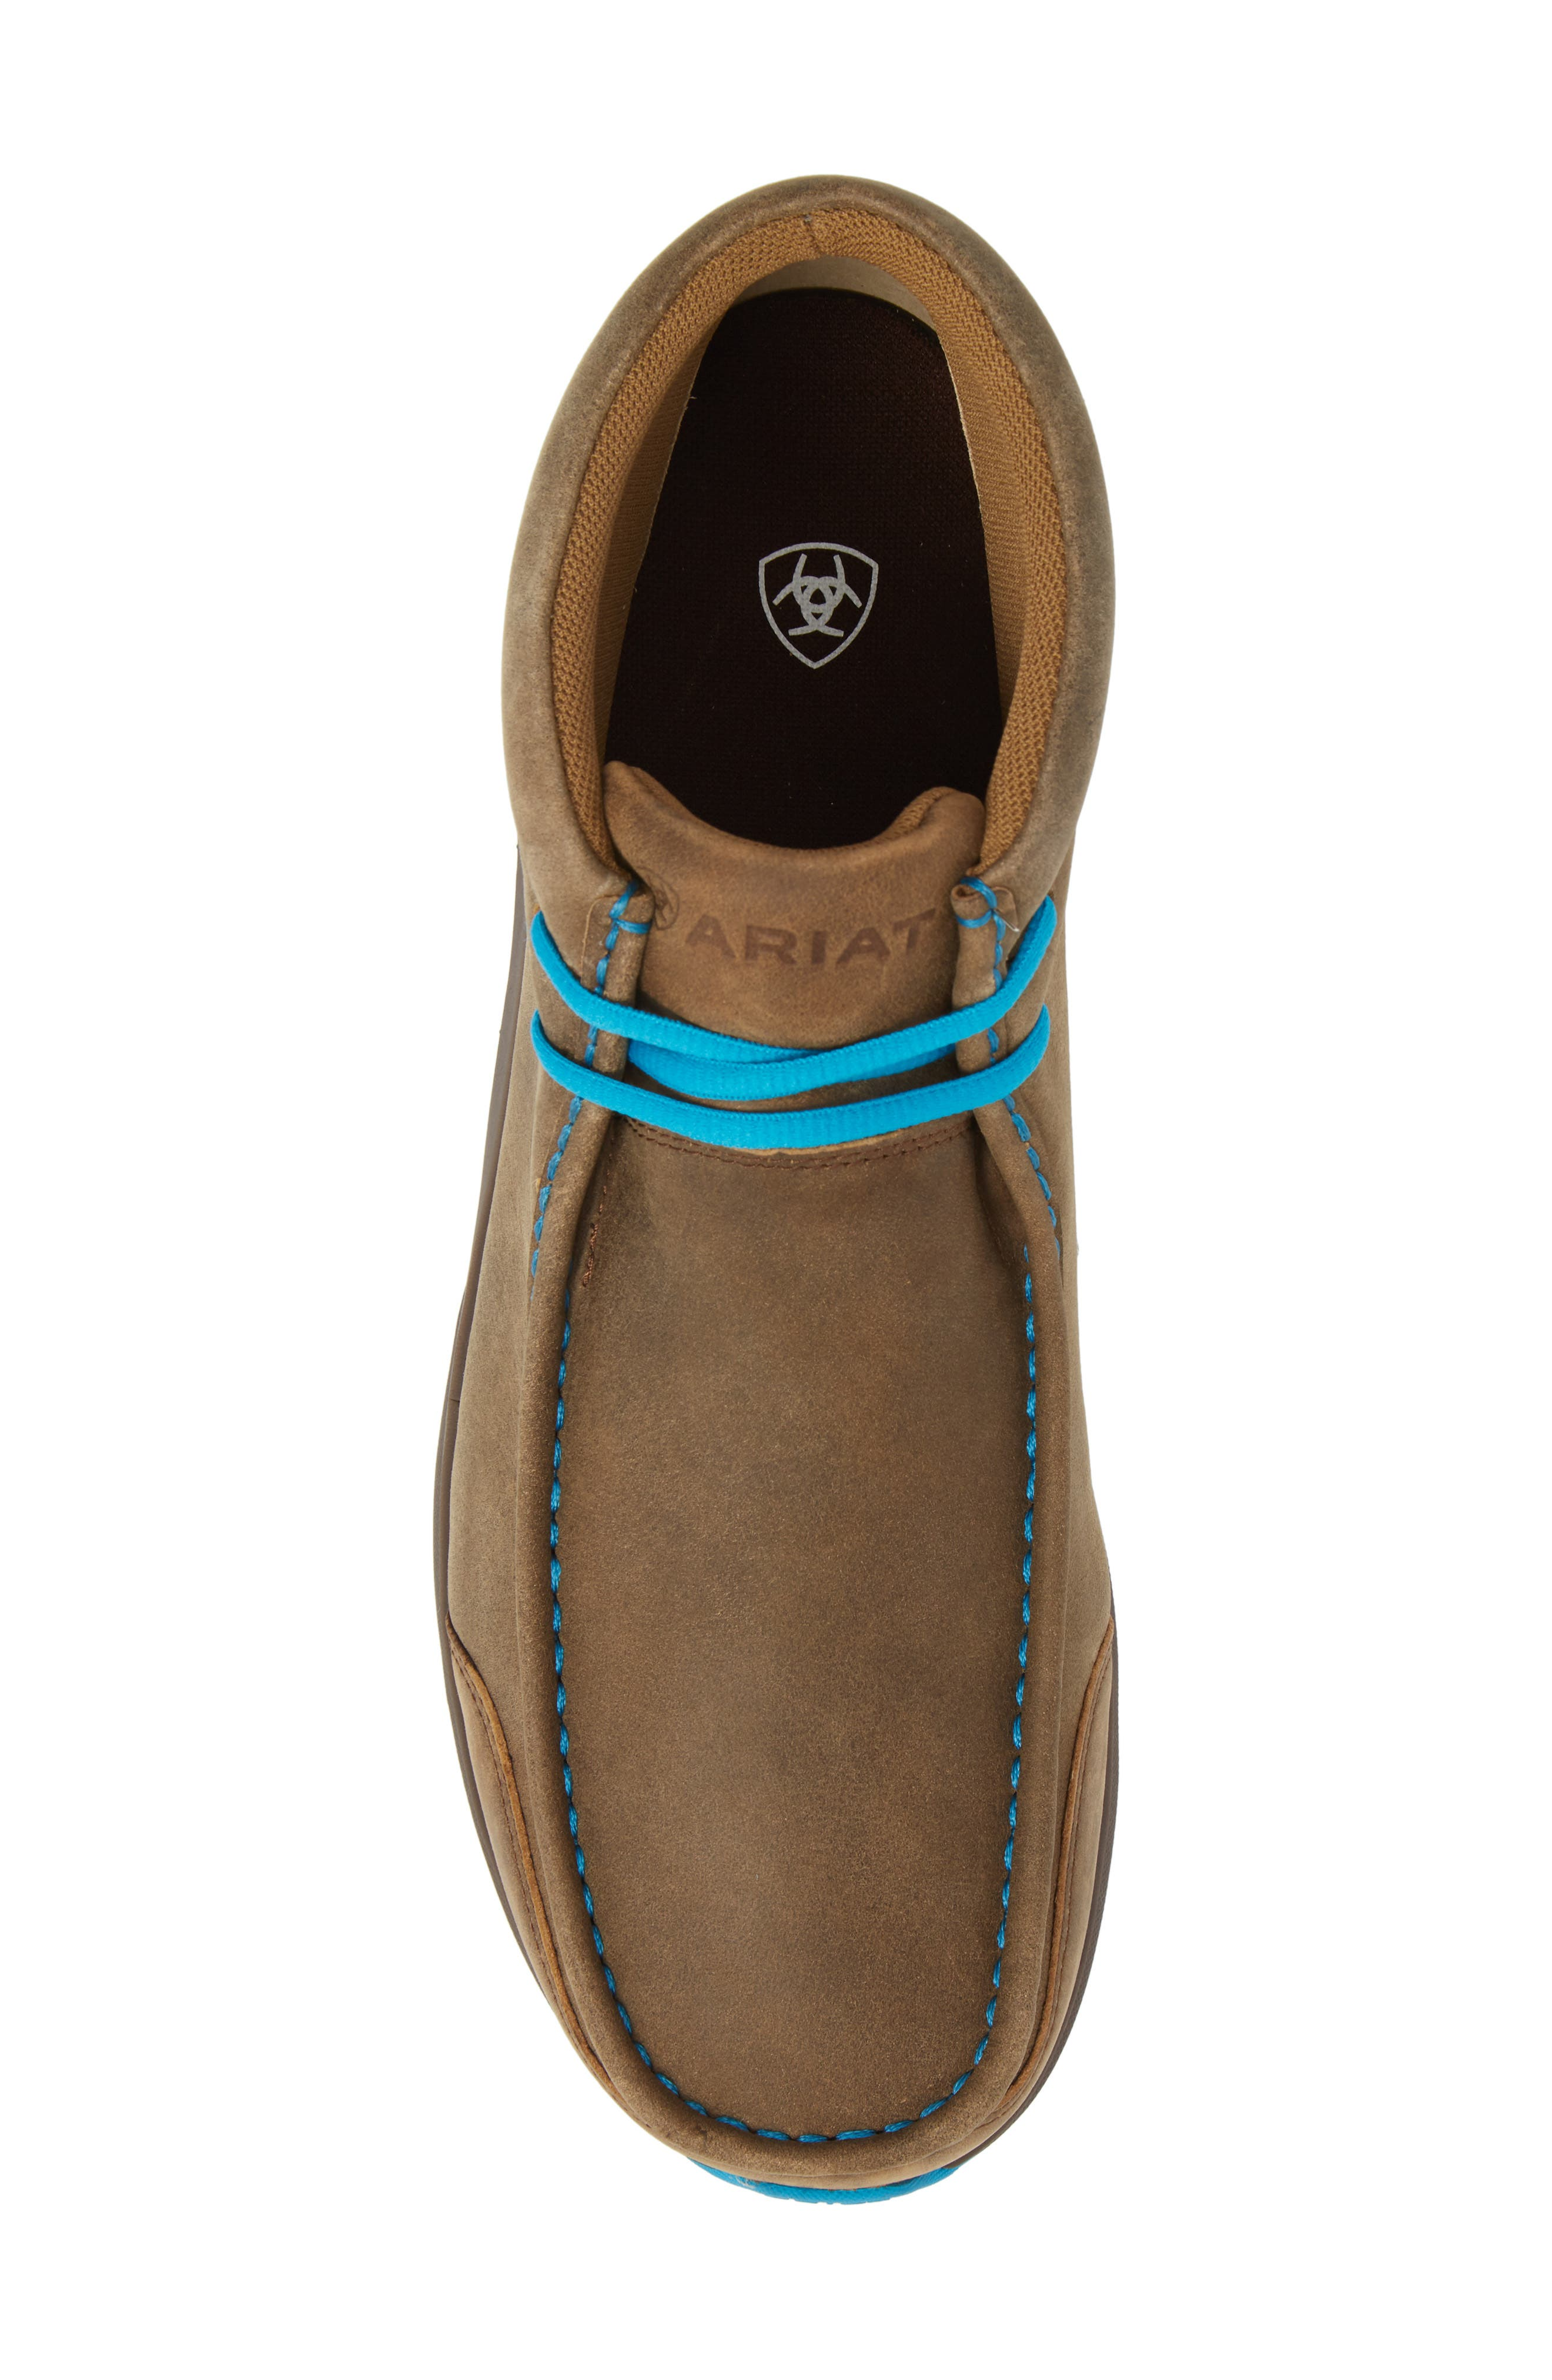 Spitfire Chukka Boot,                             Alternate thumbnail 5, color,                             BROWN BOMBER/ BLUE LEATHER